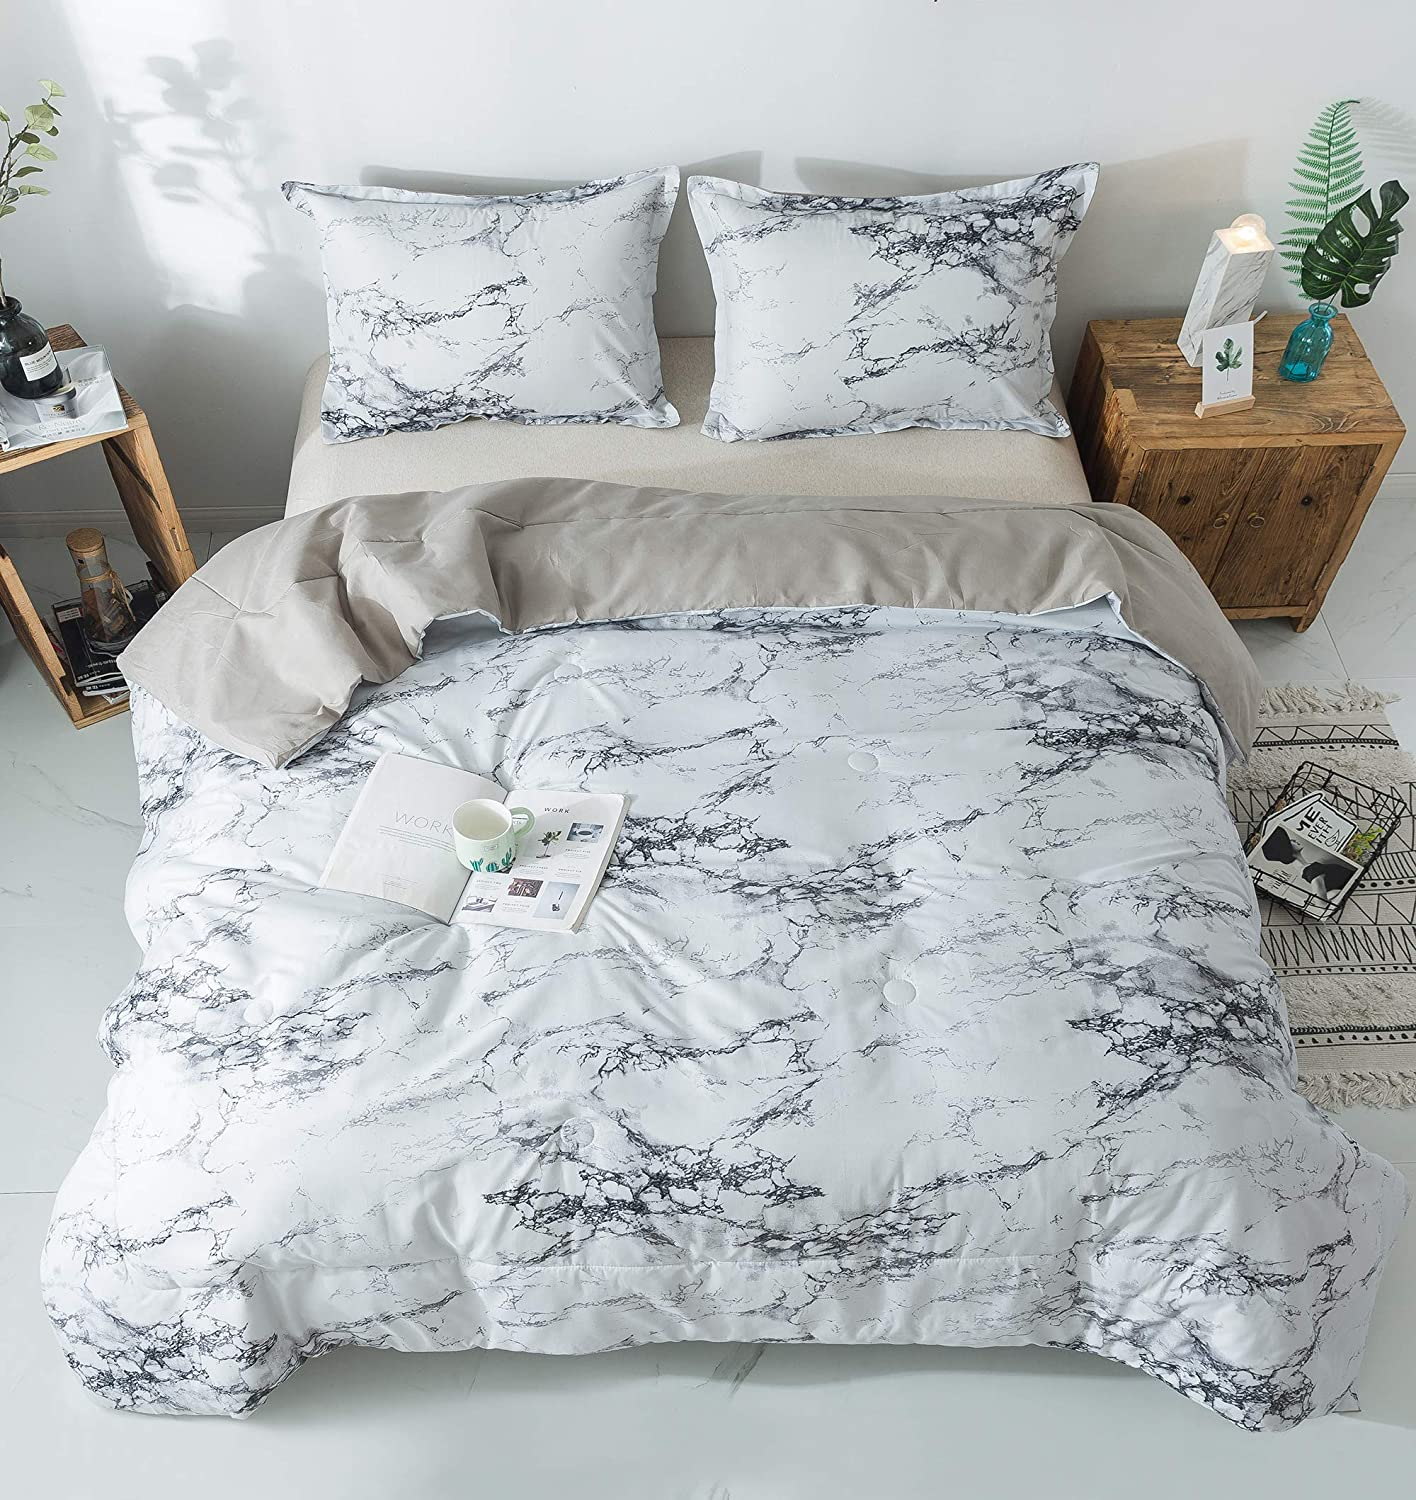 PomCo Marble Comforter Queen (90x90 Inch), 3Pcs(1 Marble Comforter & 2 Pillowcases) Grey Marble Print Microfiber Bedding Set, Modern Marble Pattern Comforter Set for Men, Women, Boy, Girl